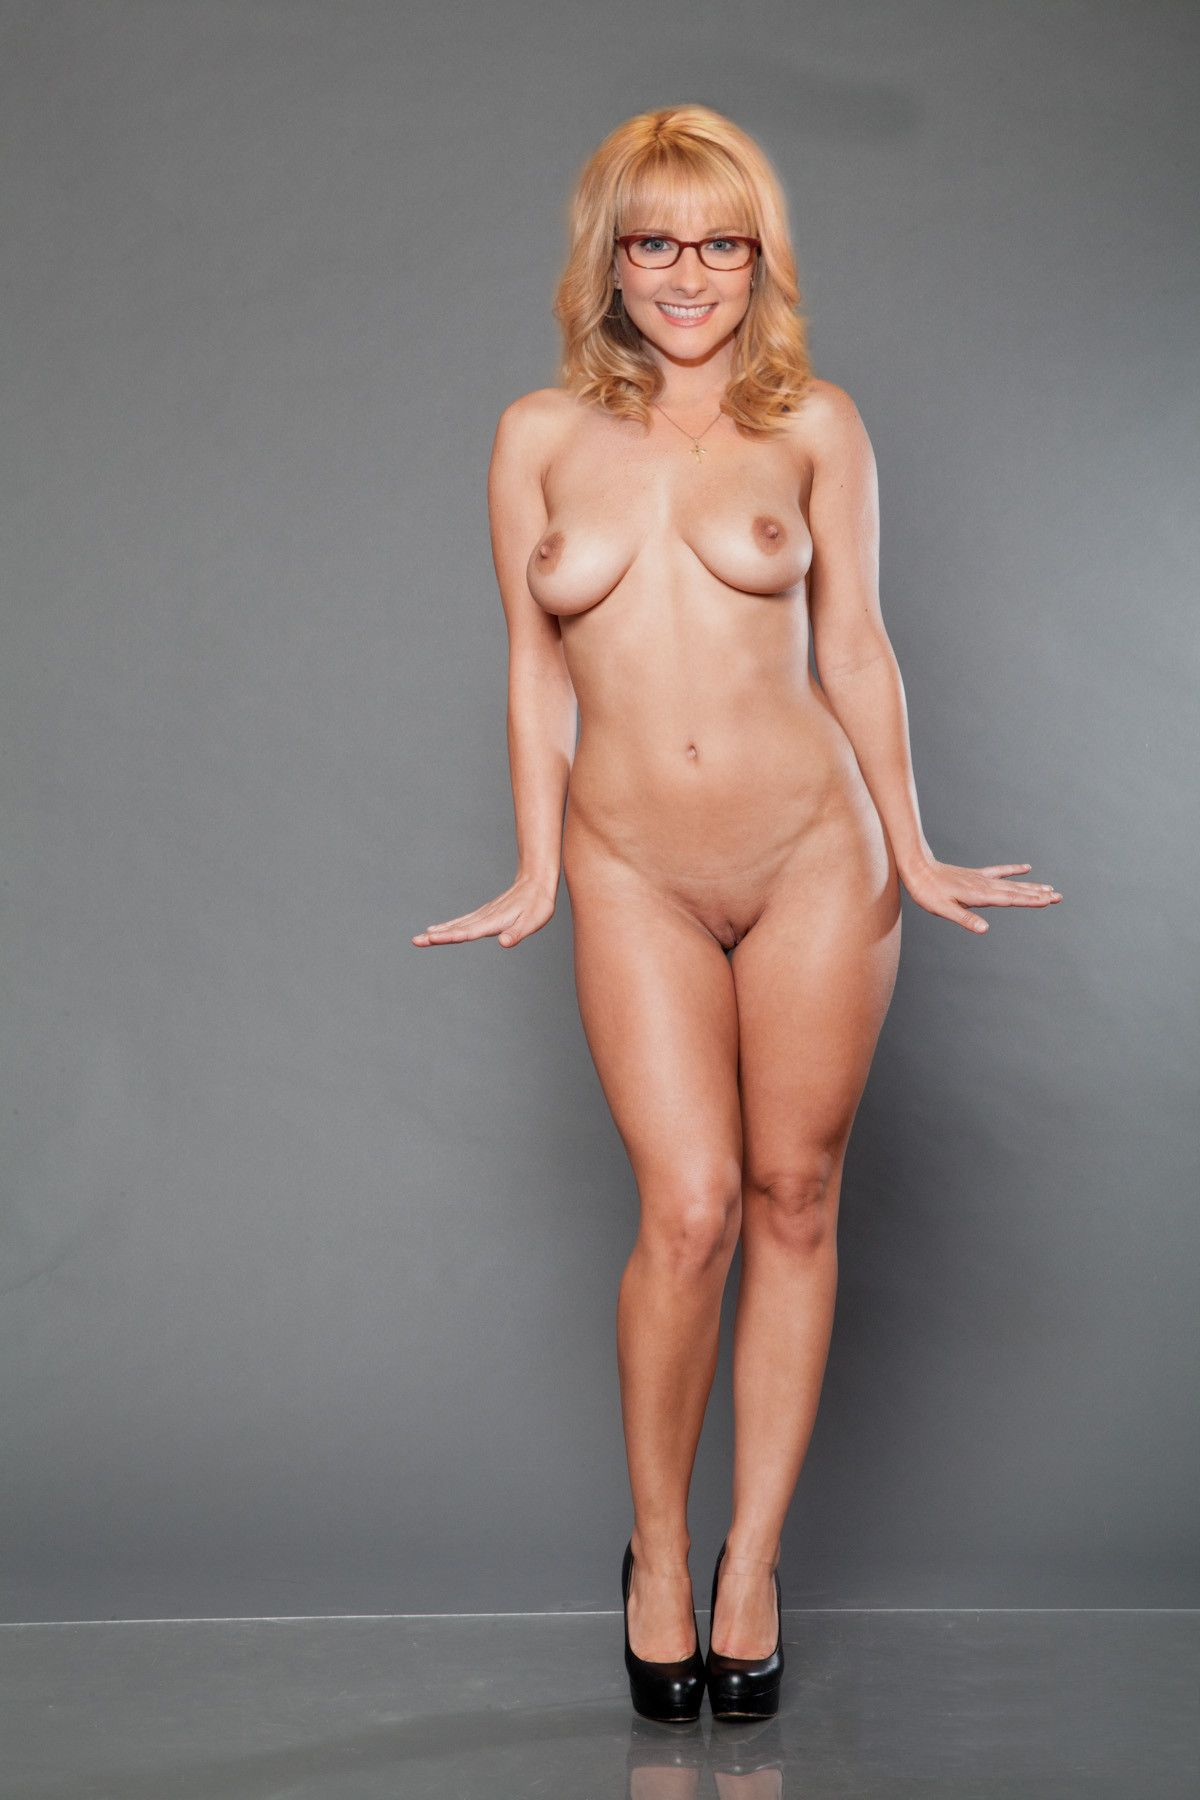 Rae com naked news woman incredibly